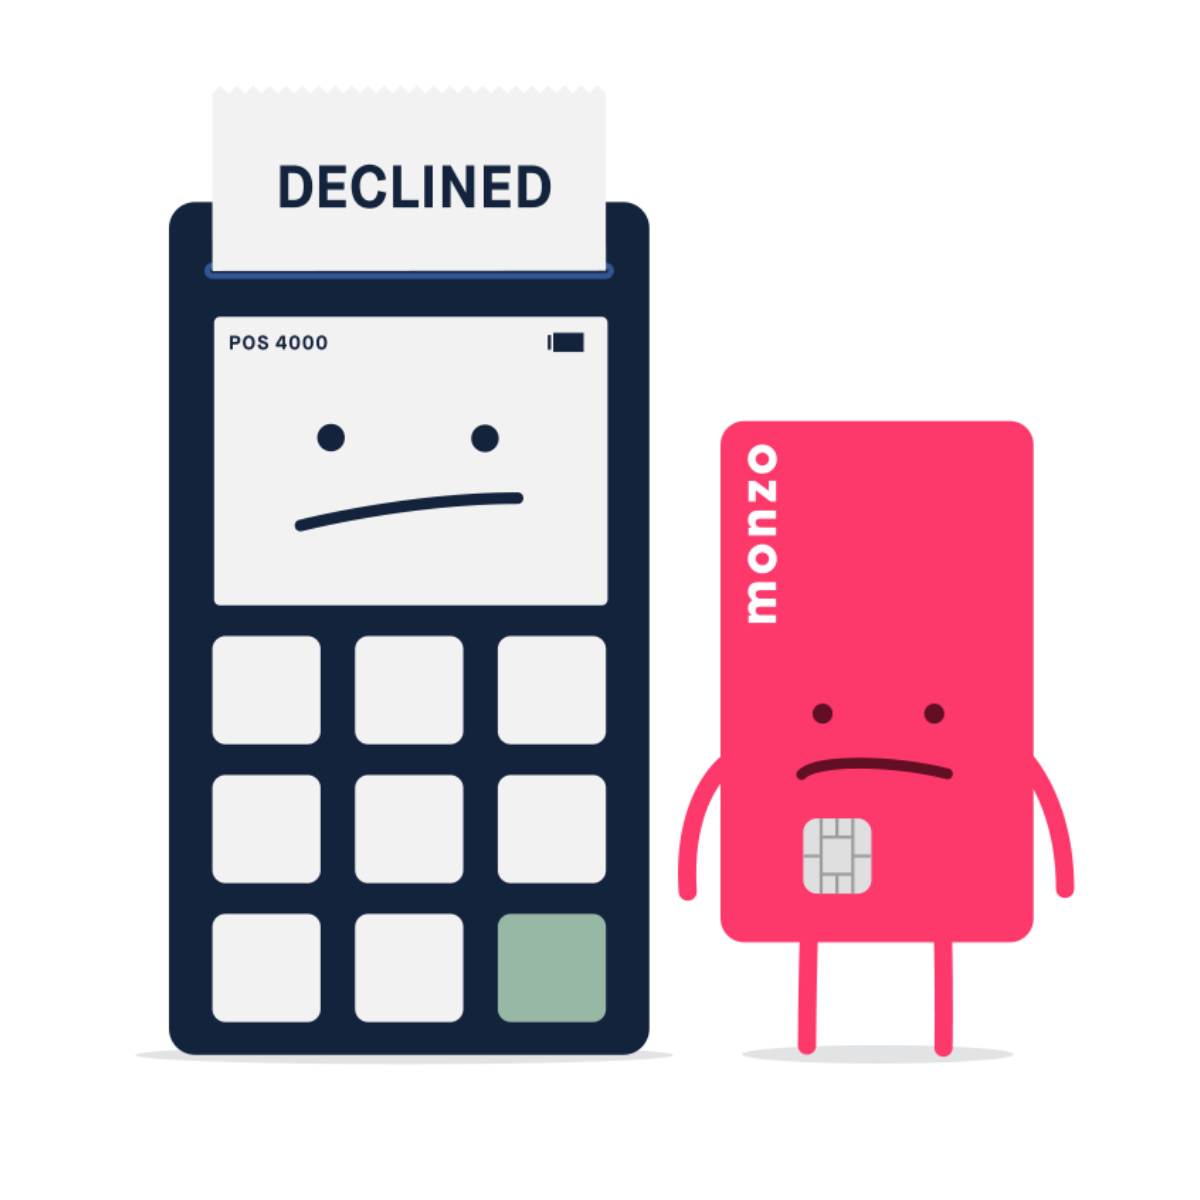 Terminal decline: Why some payments fail